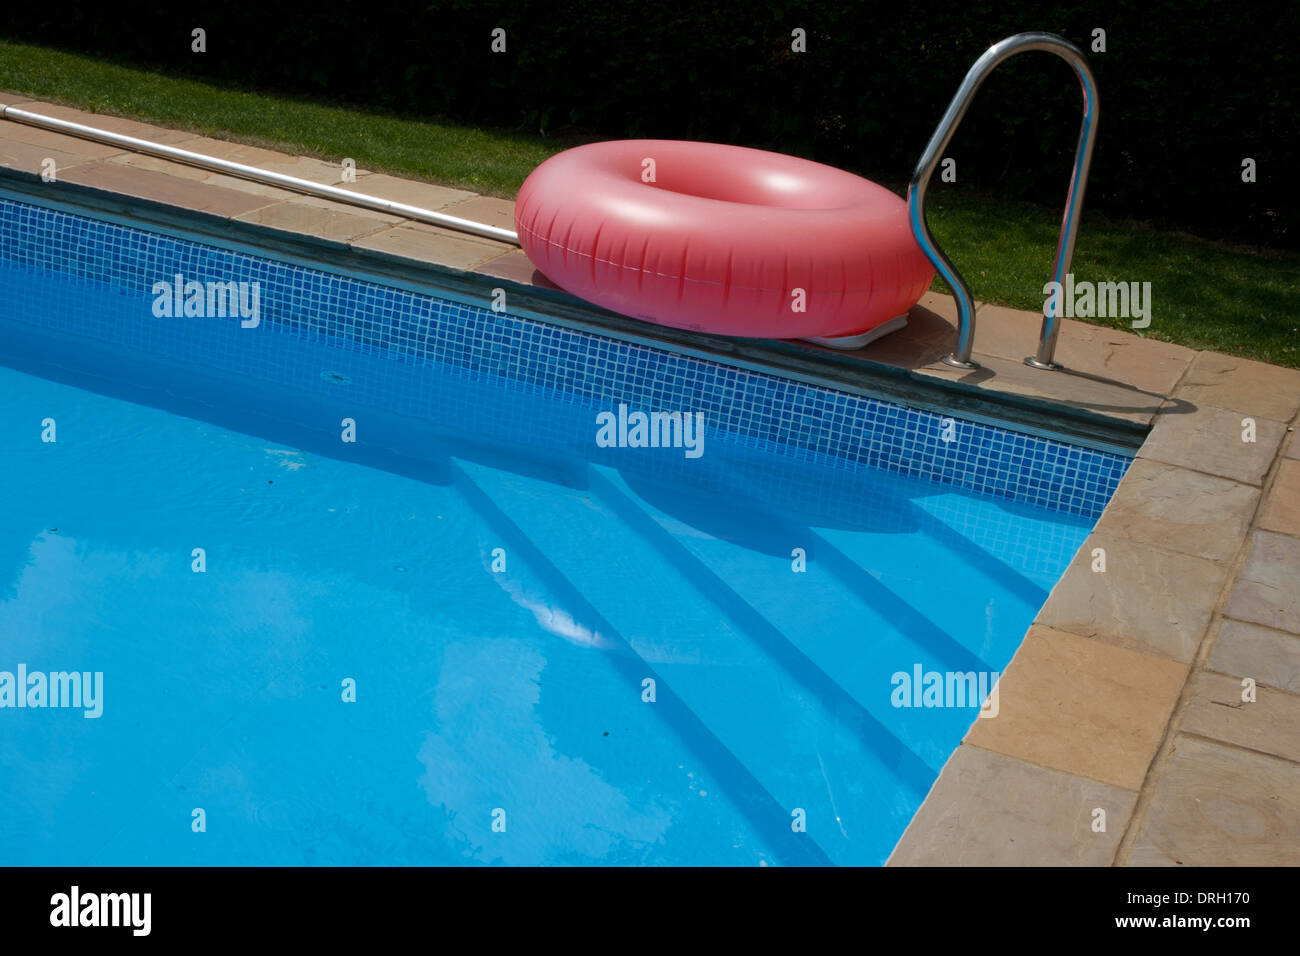 Red rubber ring at edge of swimming pool Stock Photo ...